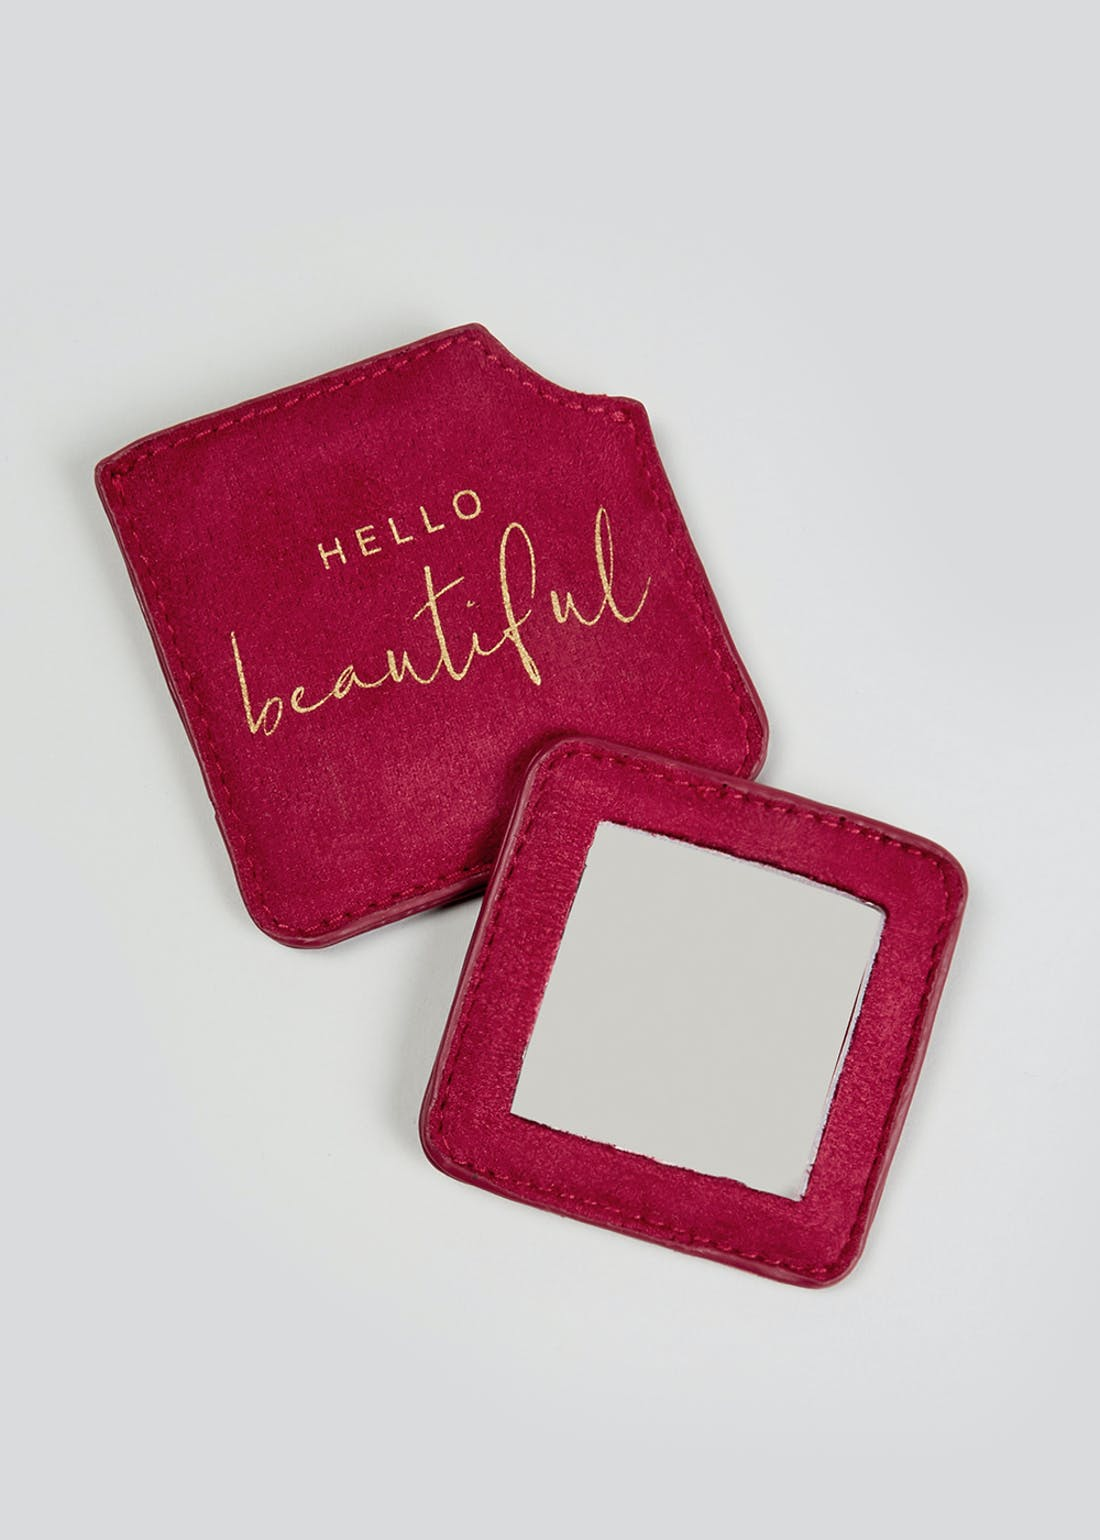 Hello Beautiful Pocket Mirror (7.8cm x 7.8cm)